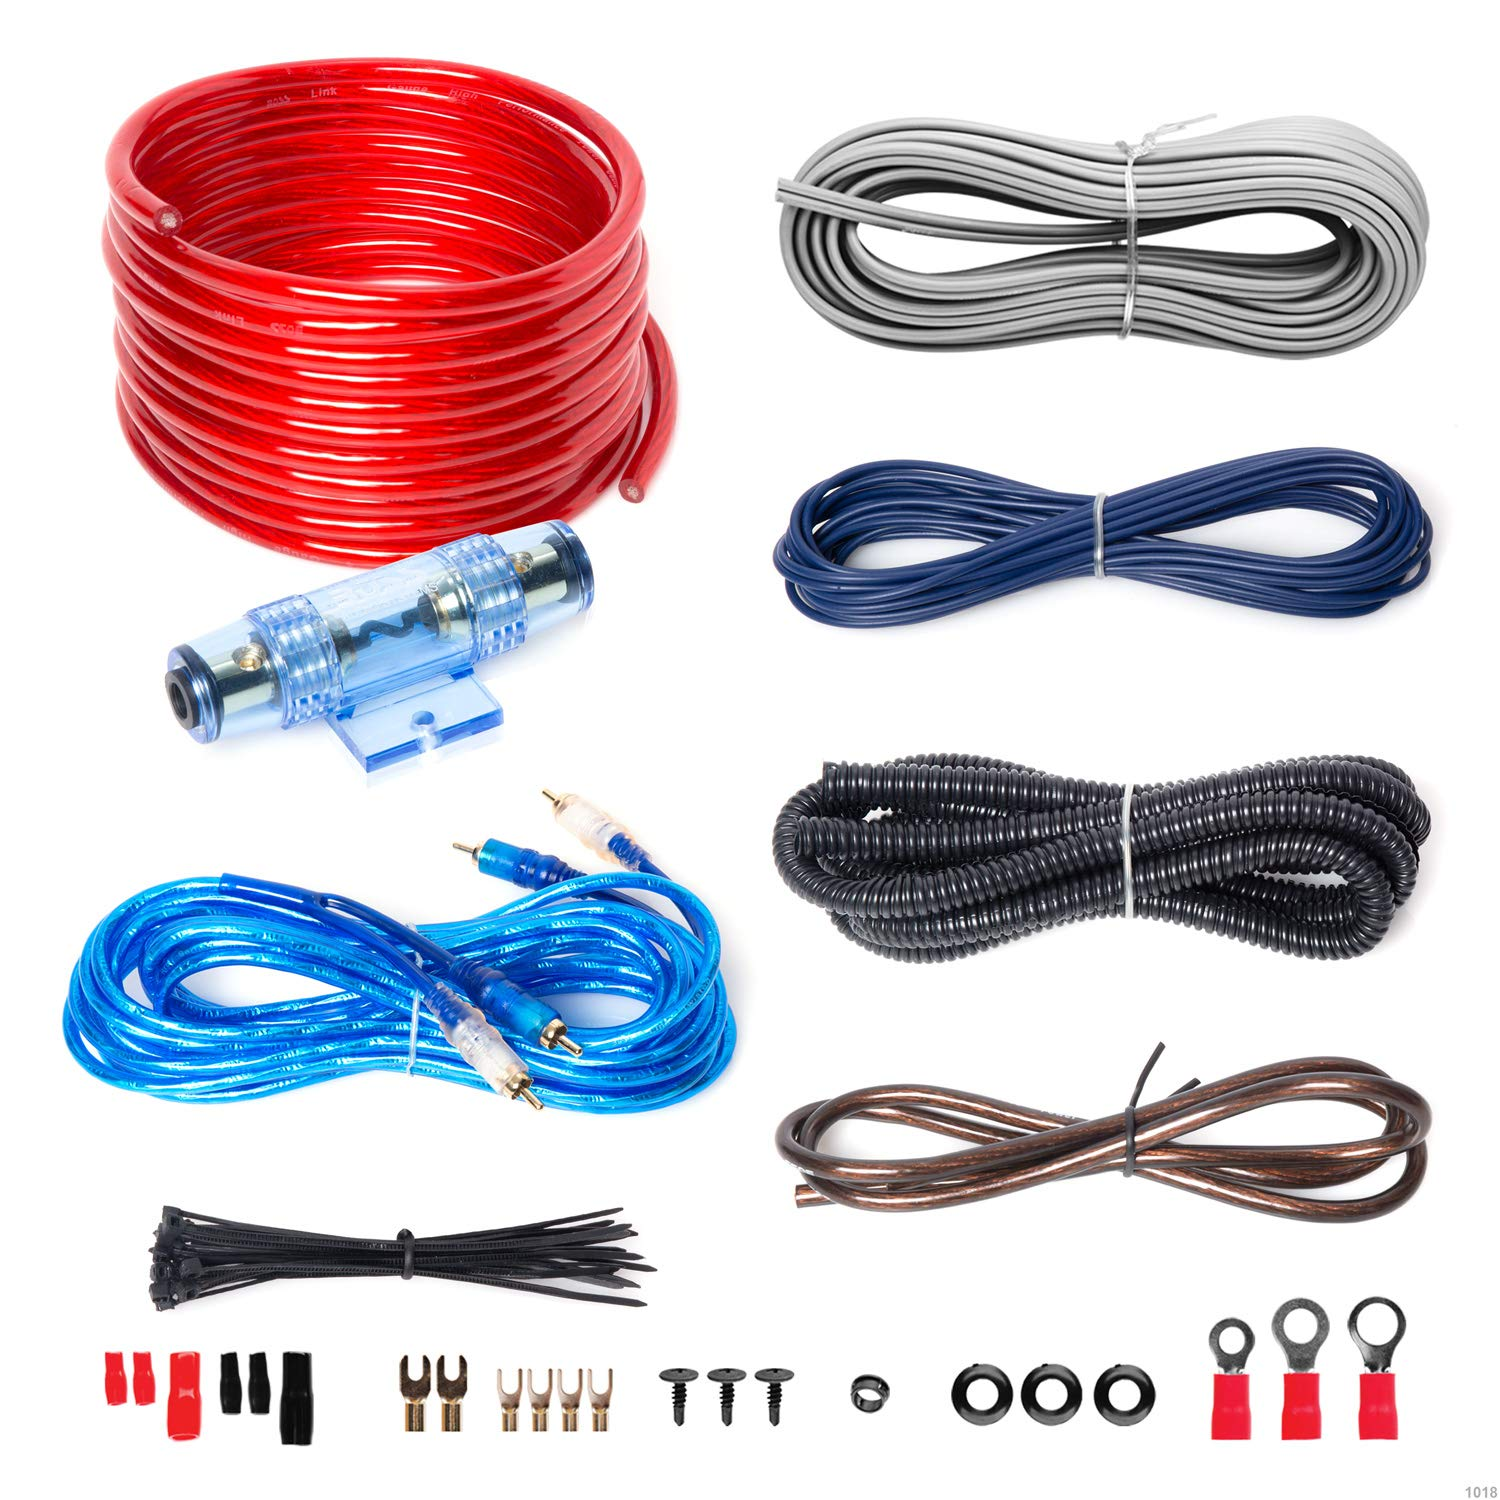 Stupendous Boss Audio Kit2 8 Gauge Amplifier Installation Wiring Kit A Car Amplifier Wiring Kit Helps You Make Connections And Brings Power To Your Radio Wiring Cloud Animomajobocepmohammedshrineorg